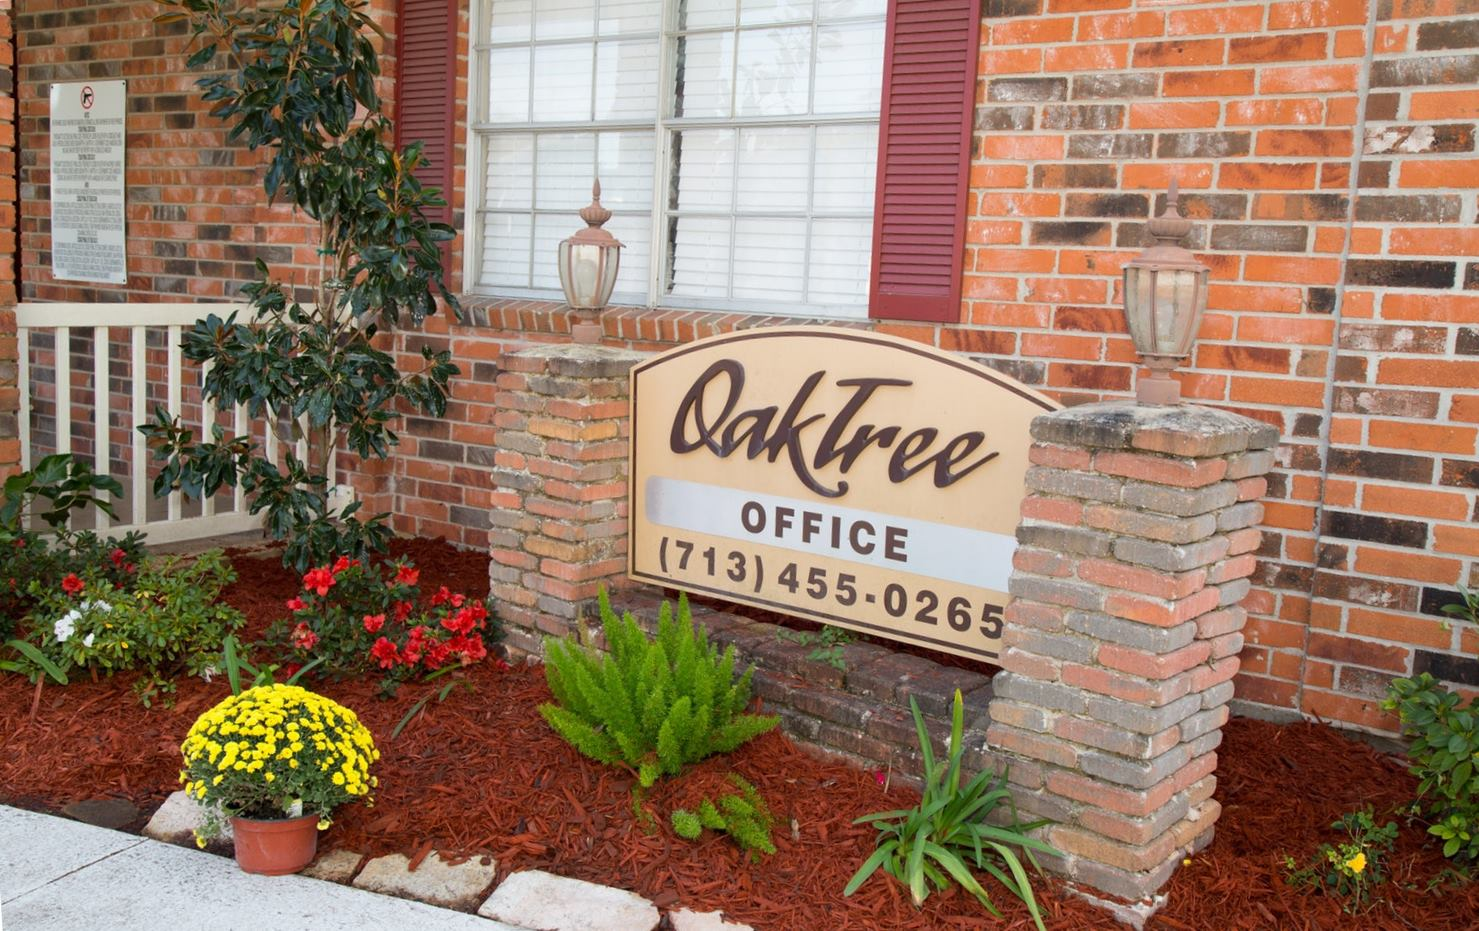 Oaktree Estates Signage